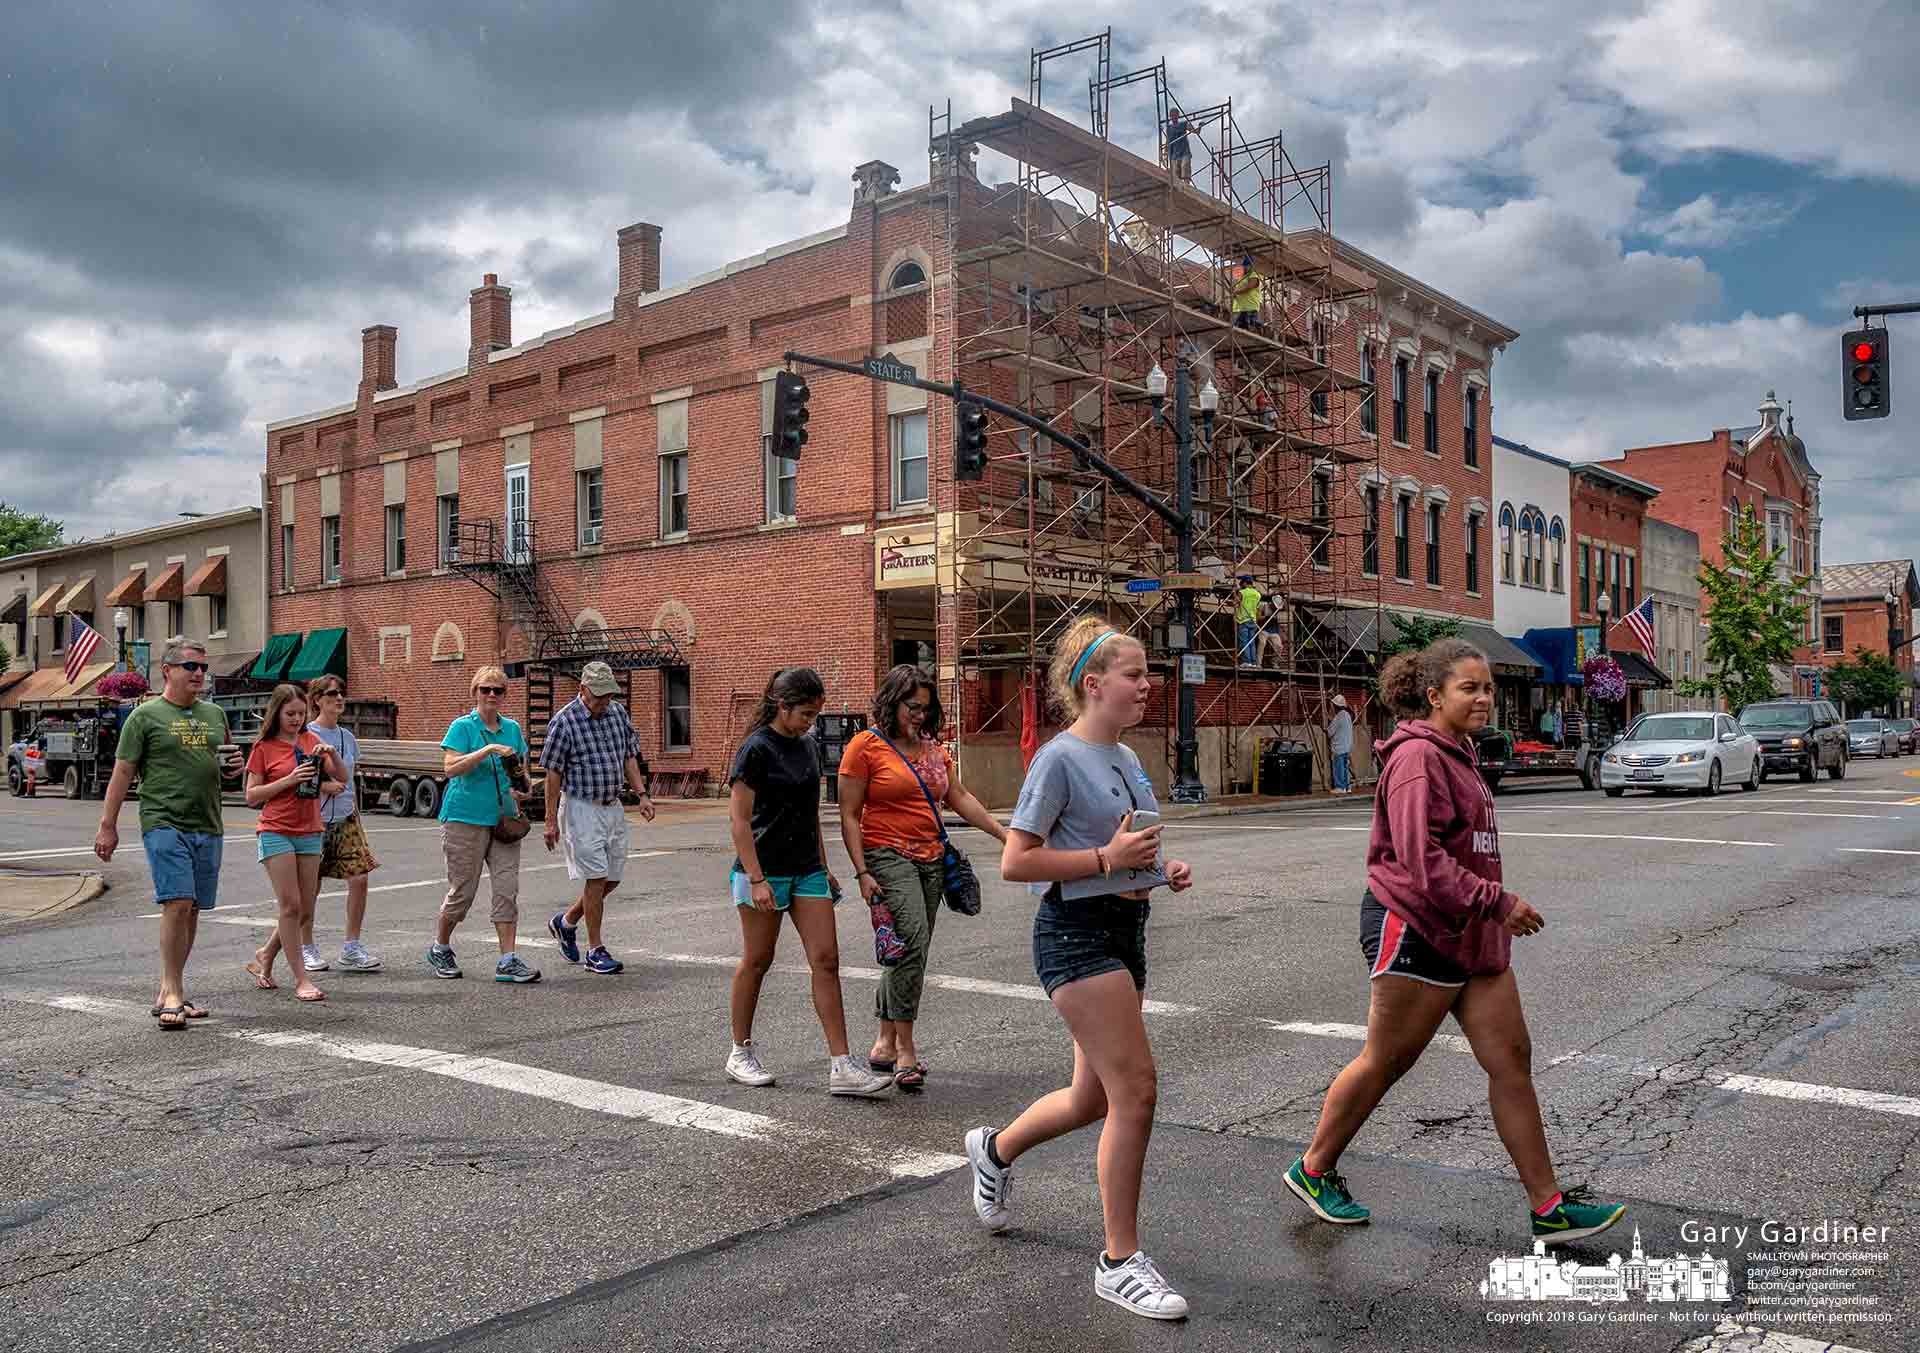 Monday shoppers cross State Street across the intersection from Graeter's where workers are installing scaffolding as the first step in restoring the original parapets that once topped the front of the building. My Final Photo for July 23, 2018.